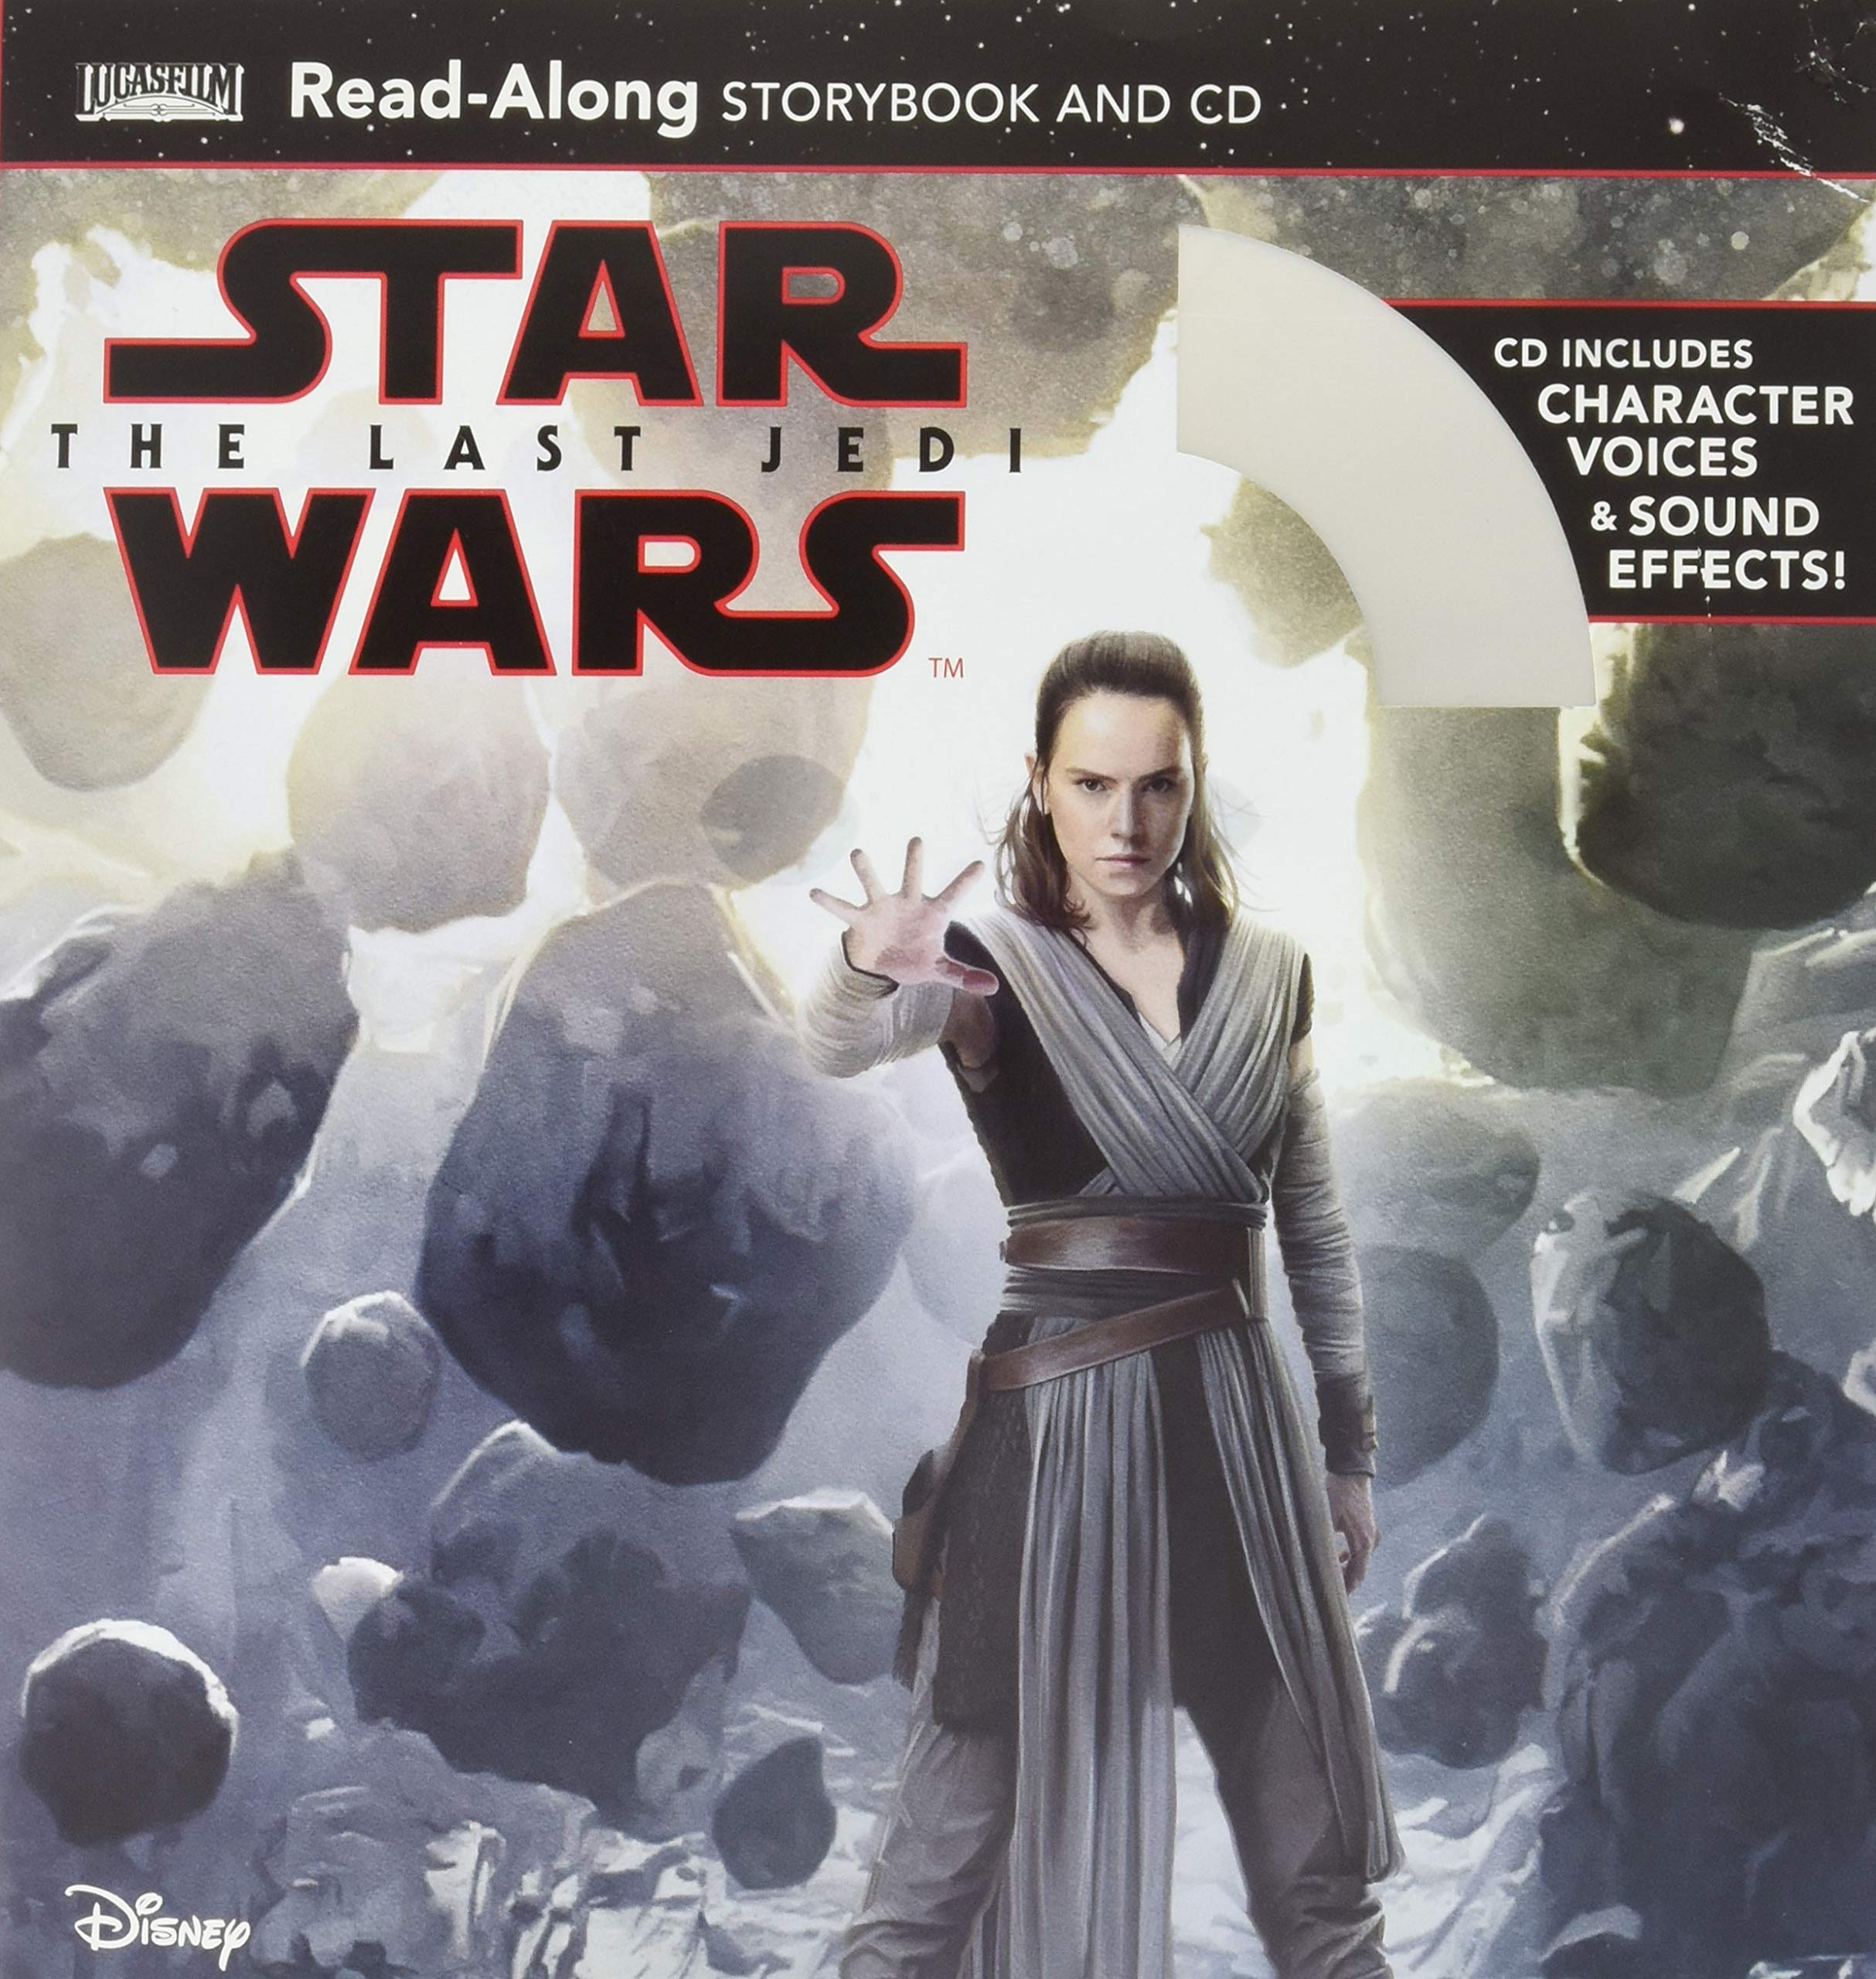 Star Wars: The Last Jedi Read-Along Book and CD